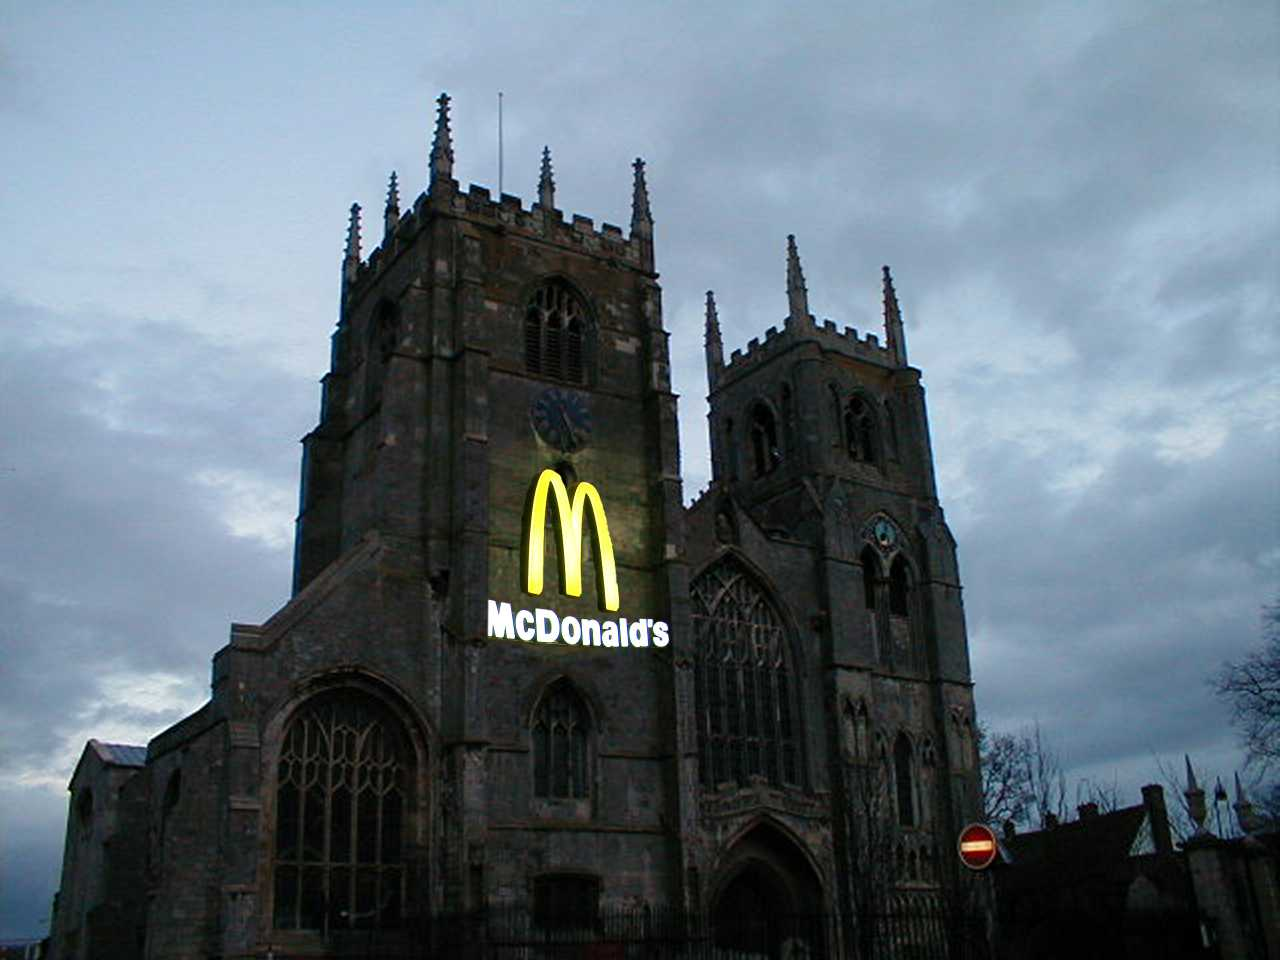 McDonalds Church - Quelle: http://randomperspective.com/images/mcdonaldschurch.jpg